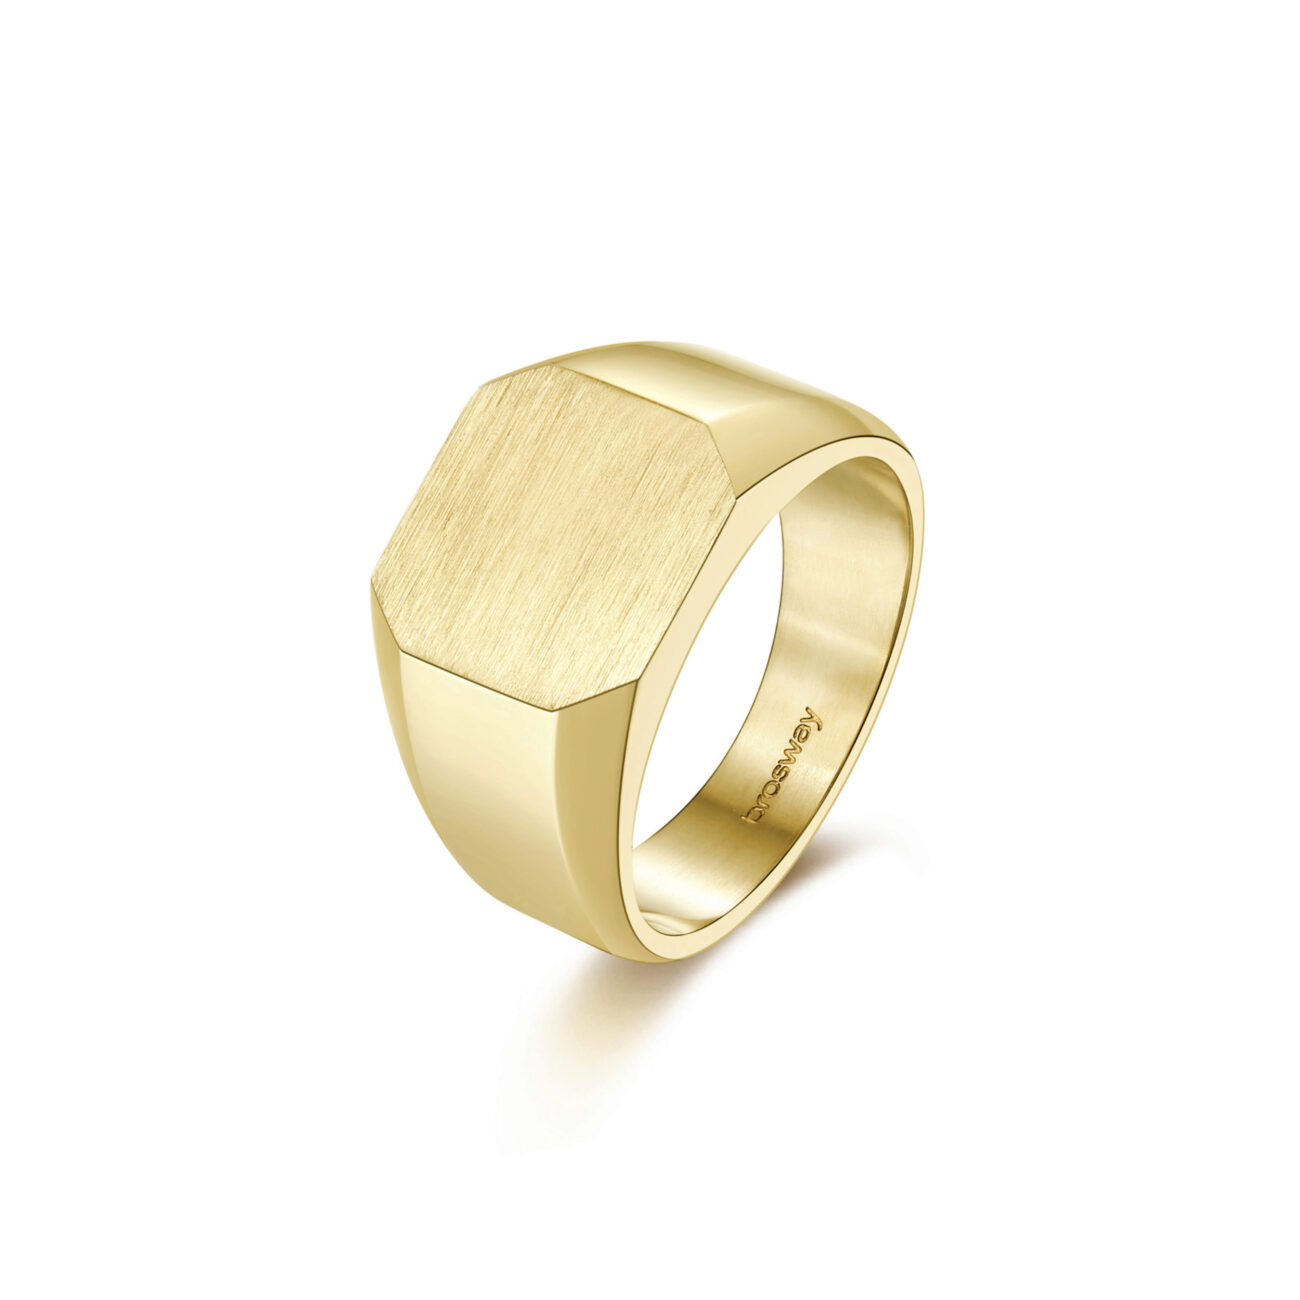 316L stainless steel signet ring and gold finishes.